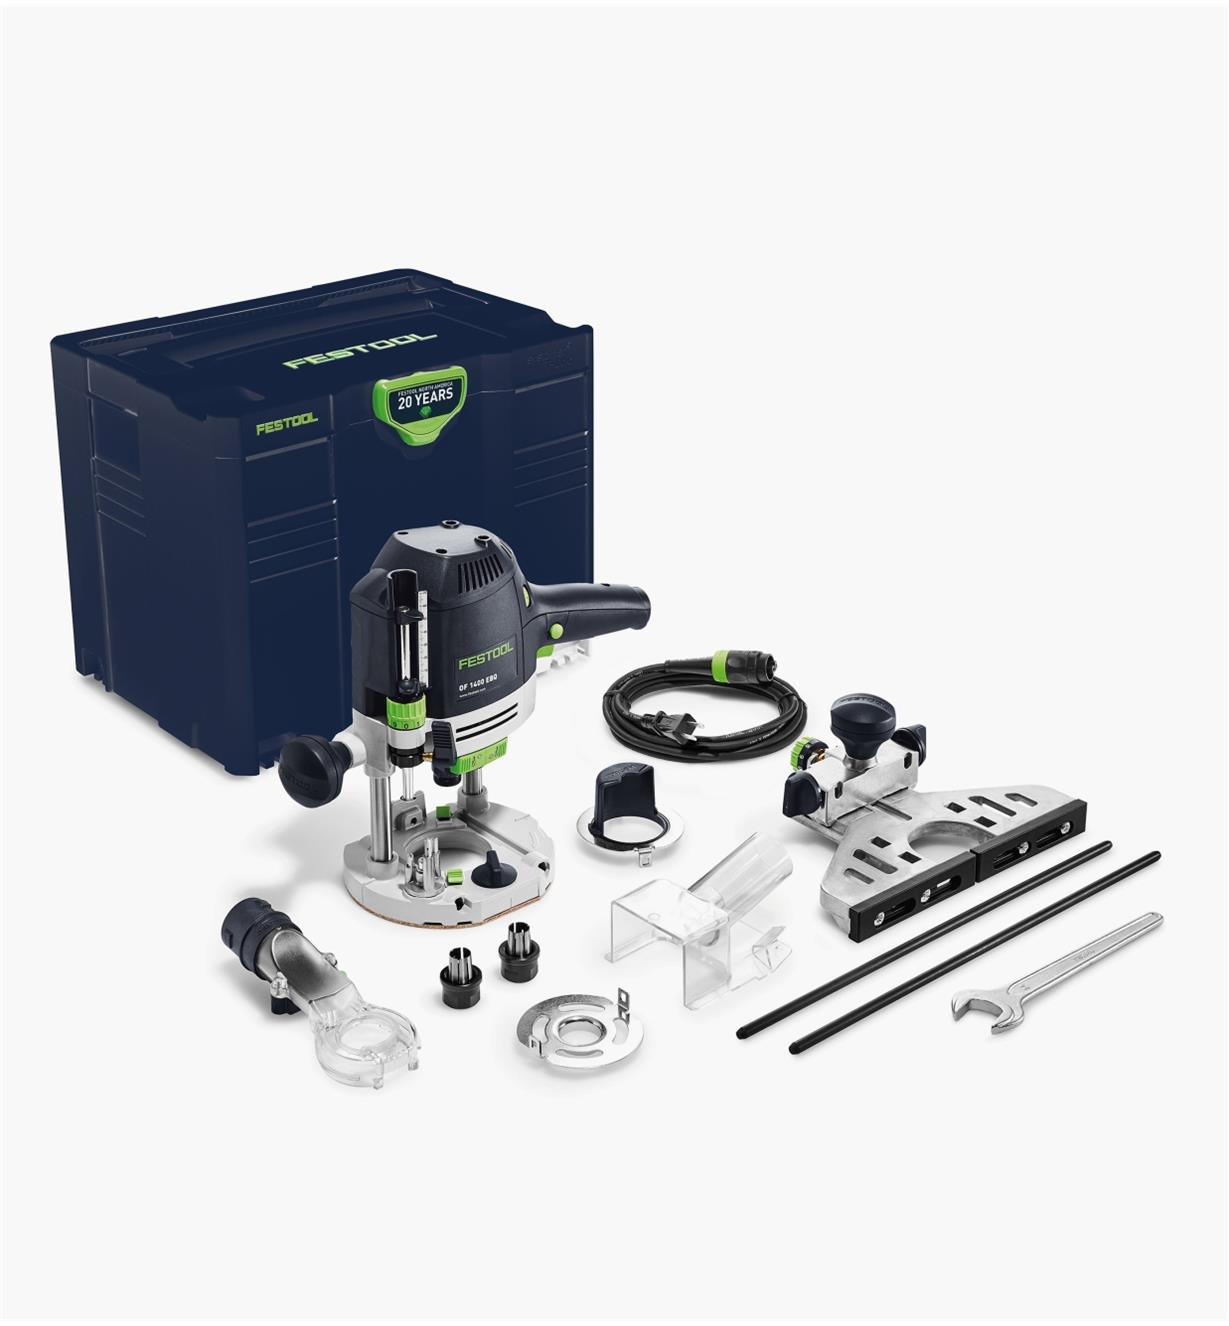 ZT576692 - Festool Emerald Edition OF 1400 EQ Router